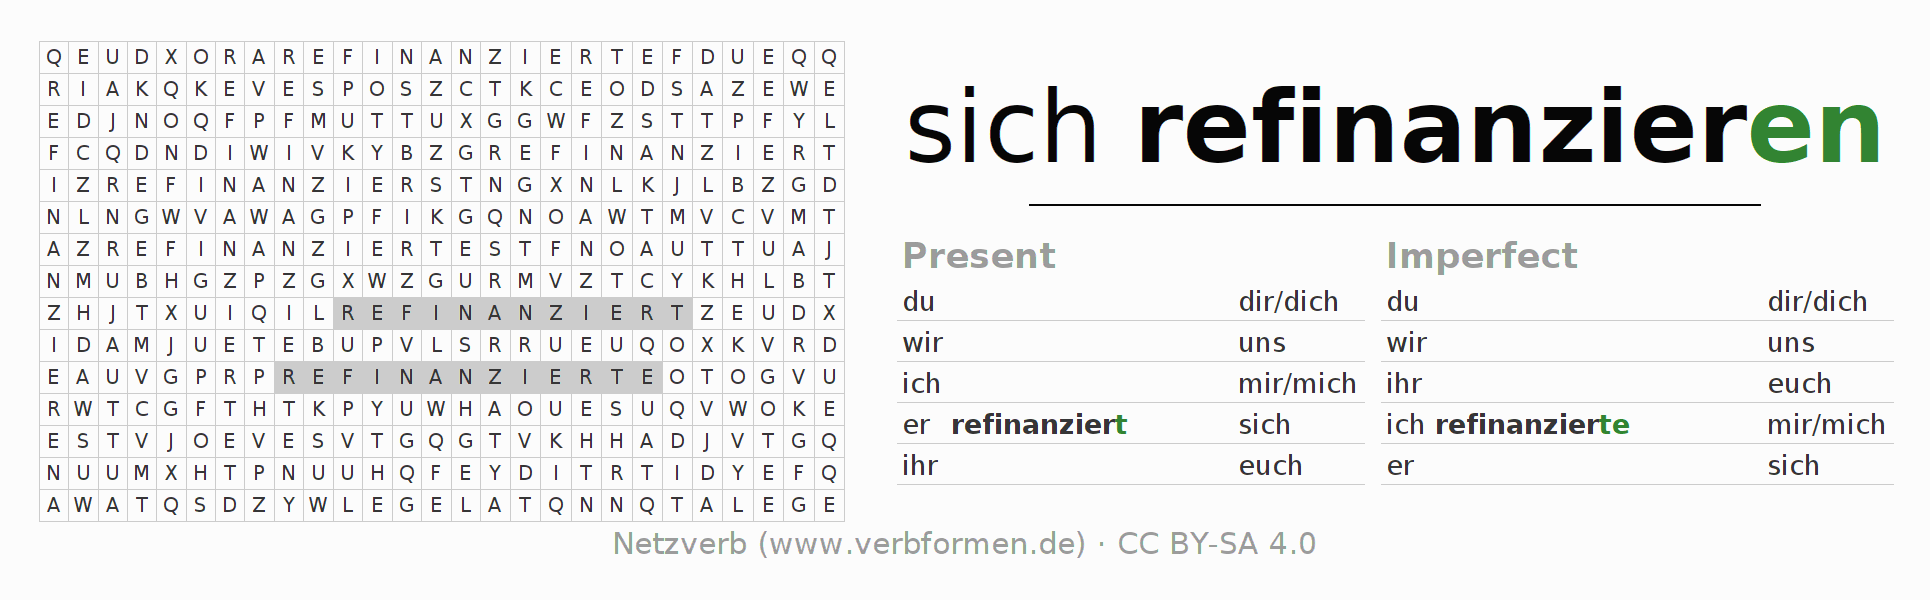 Word search puzzle for the conjugation of the verb sich refinanzieren